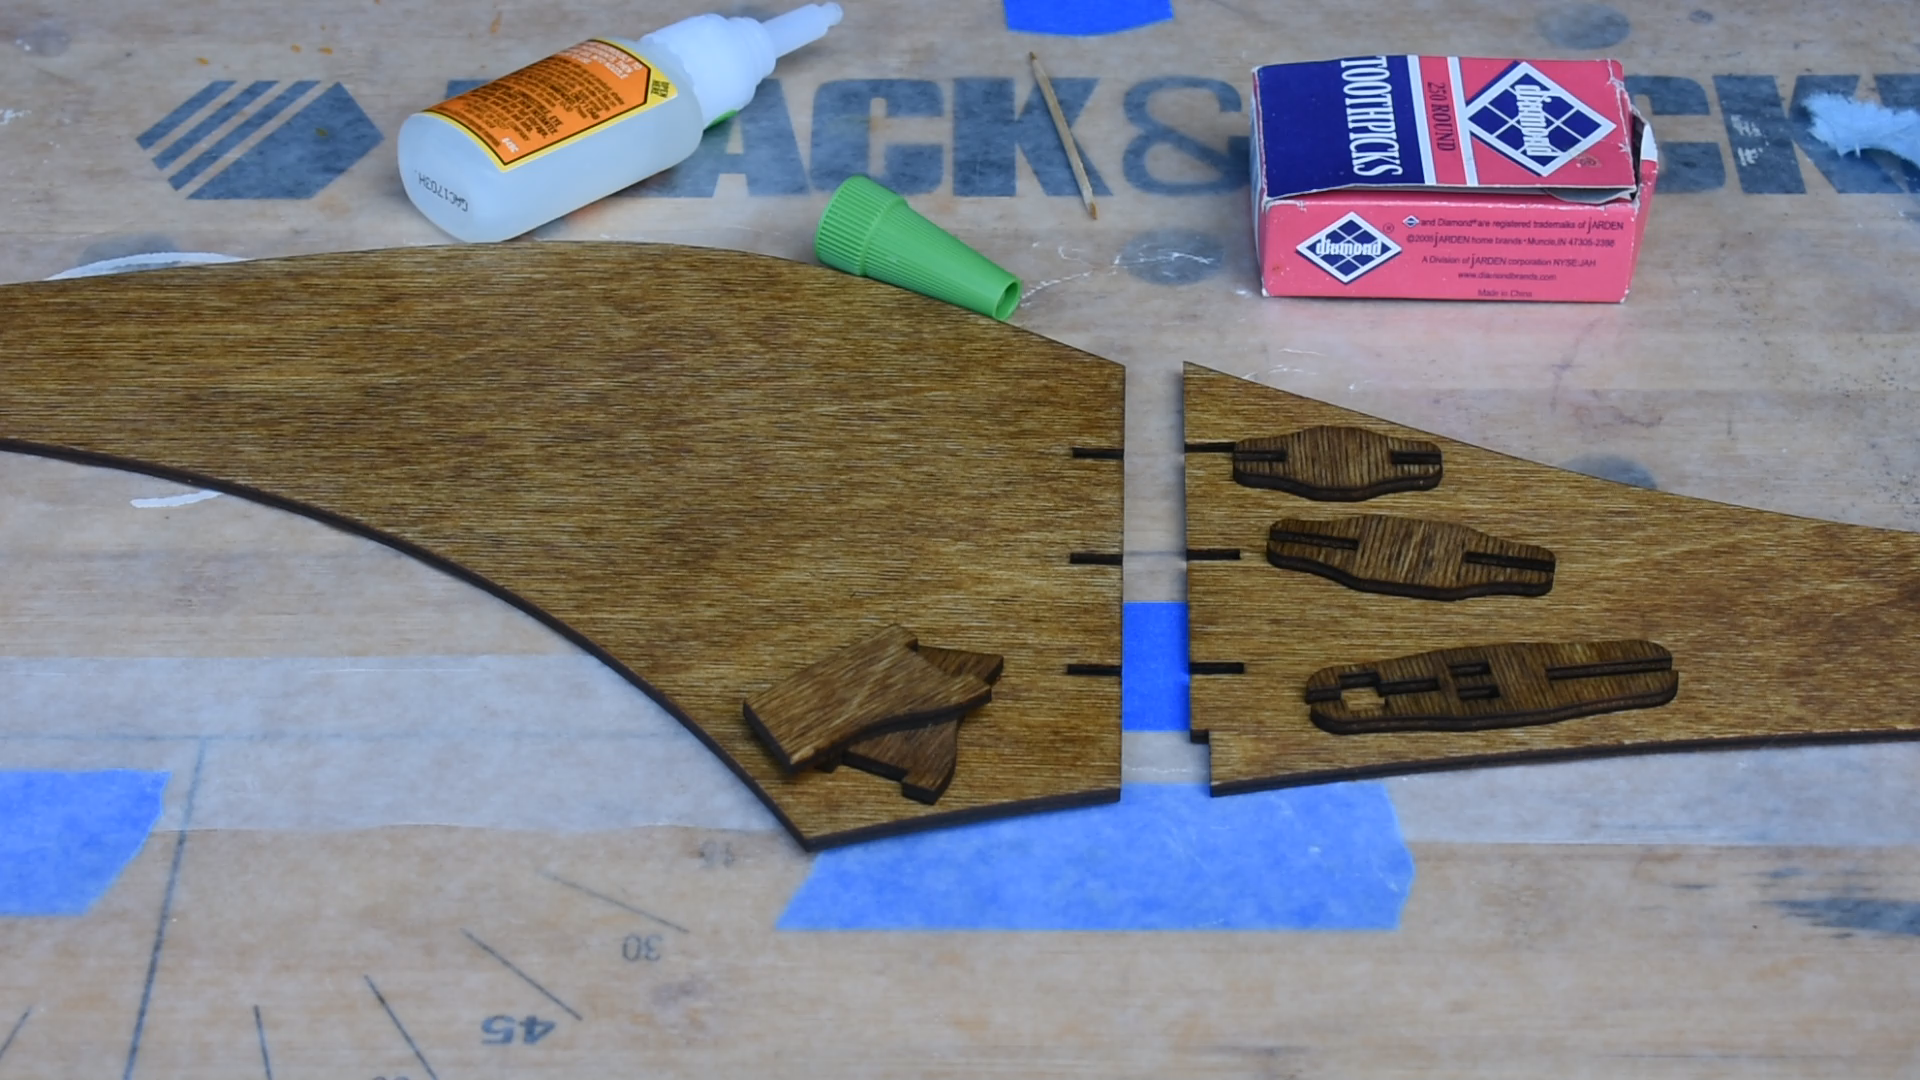 Segments before being glued together